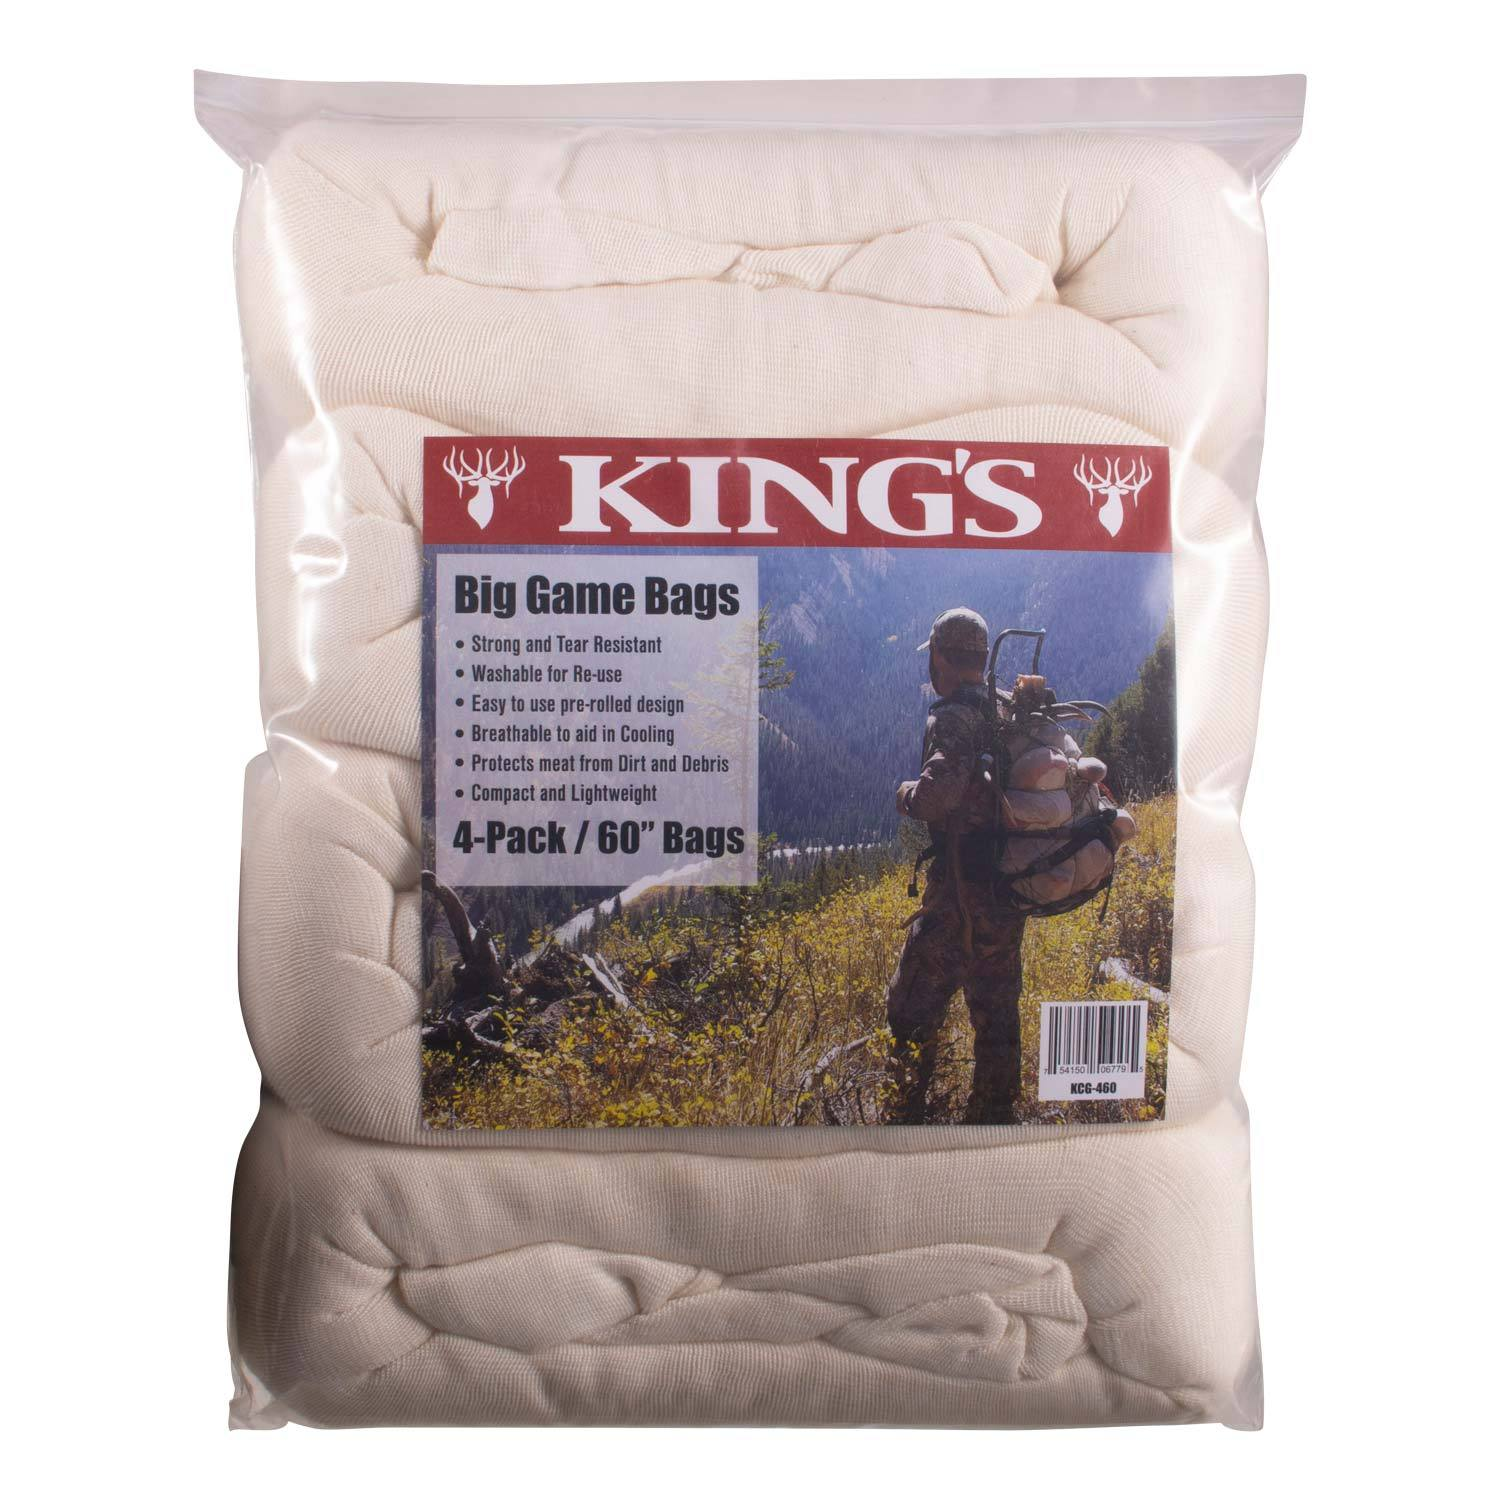 King's 4-Pack Large Game Bags   King's Camo